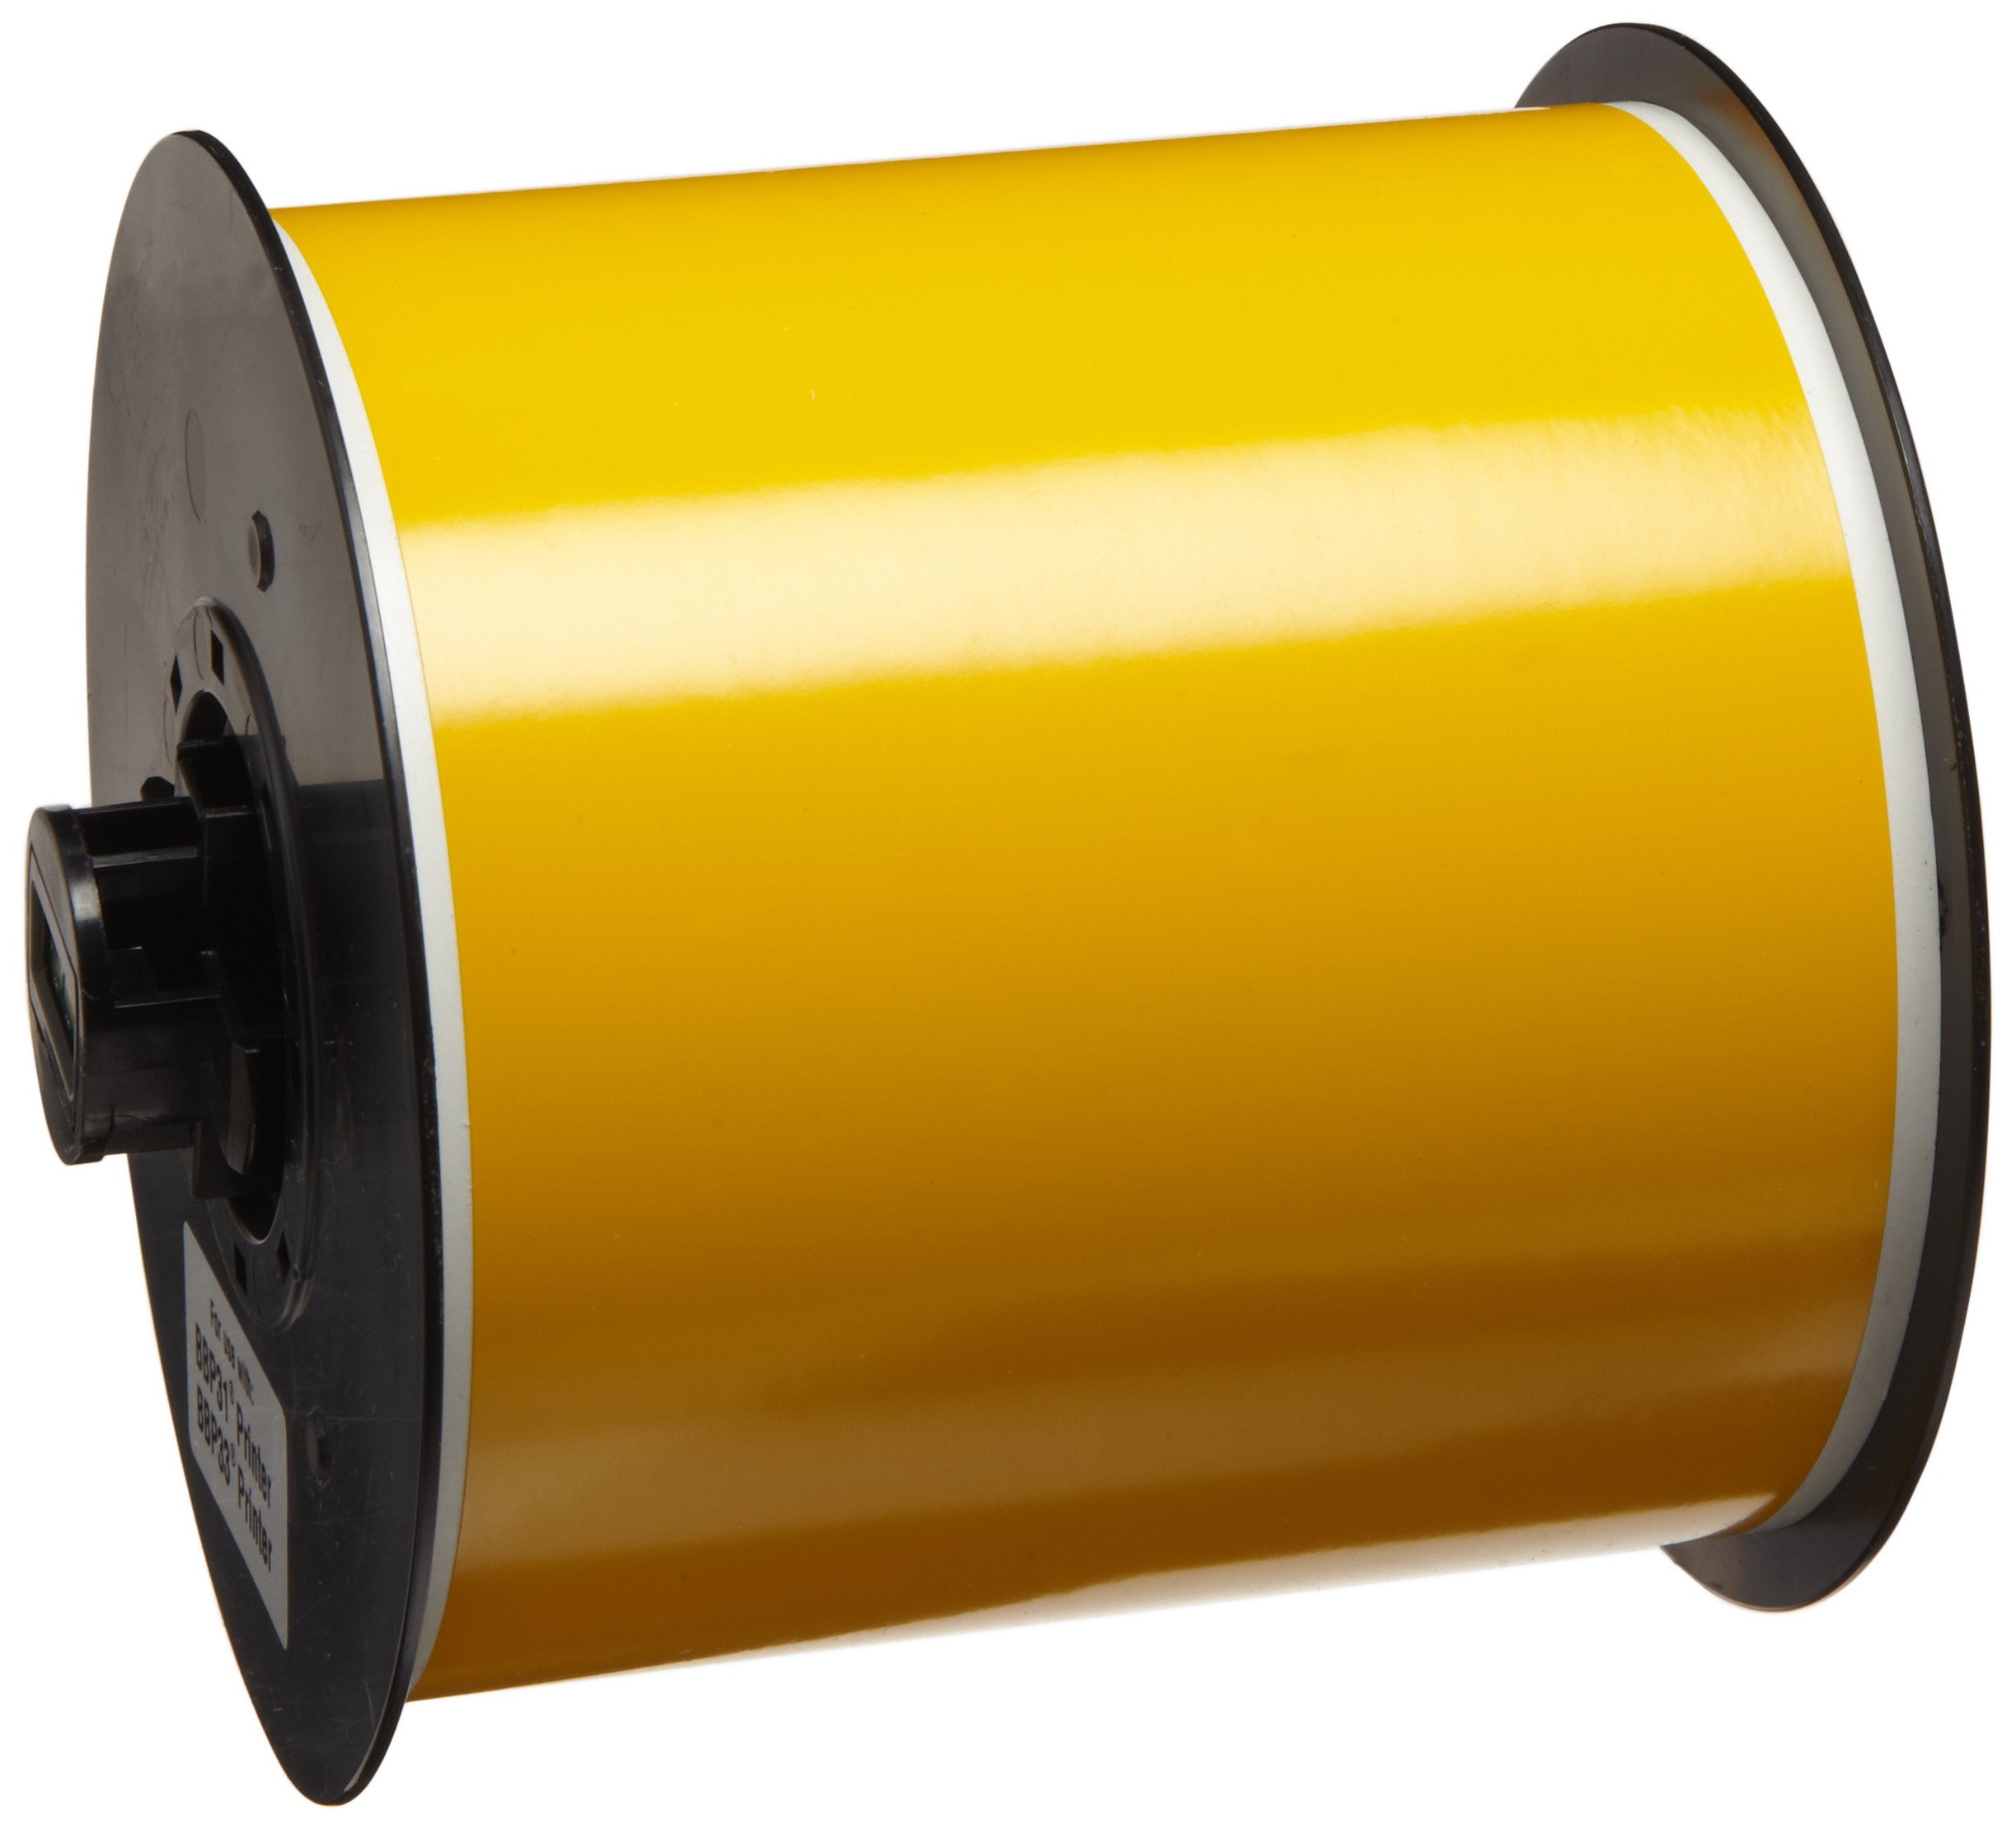 Brady High Adhesion Vinyl Label Tape (B30C-4000-595-YL) - Yellow Vinyl Film - Compatible with BMP30, BBP31, BBP35, and BBP37 Label Printers - 100' Length, 4'' Width